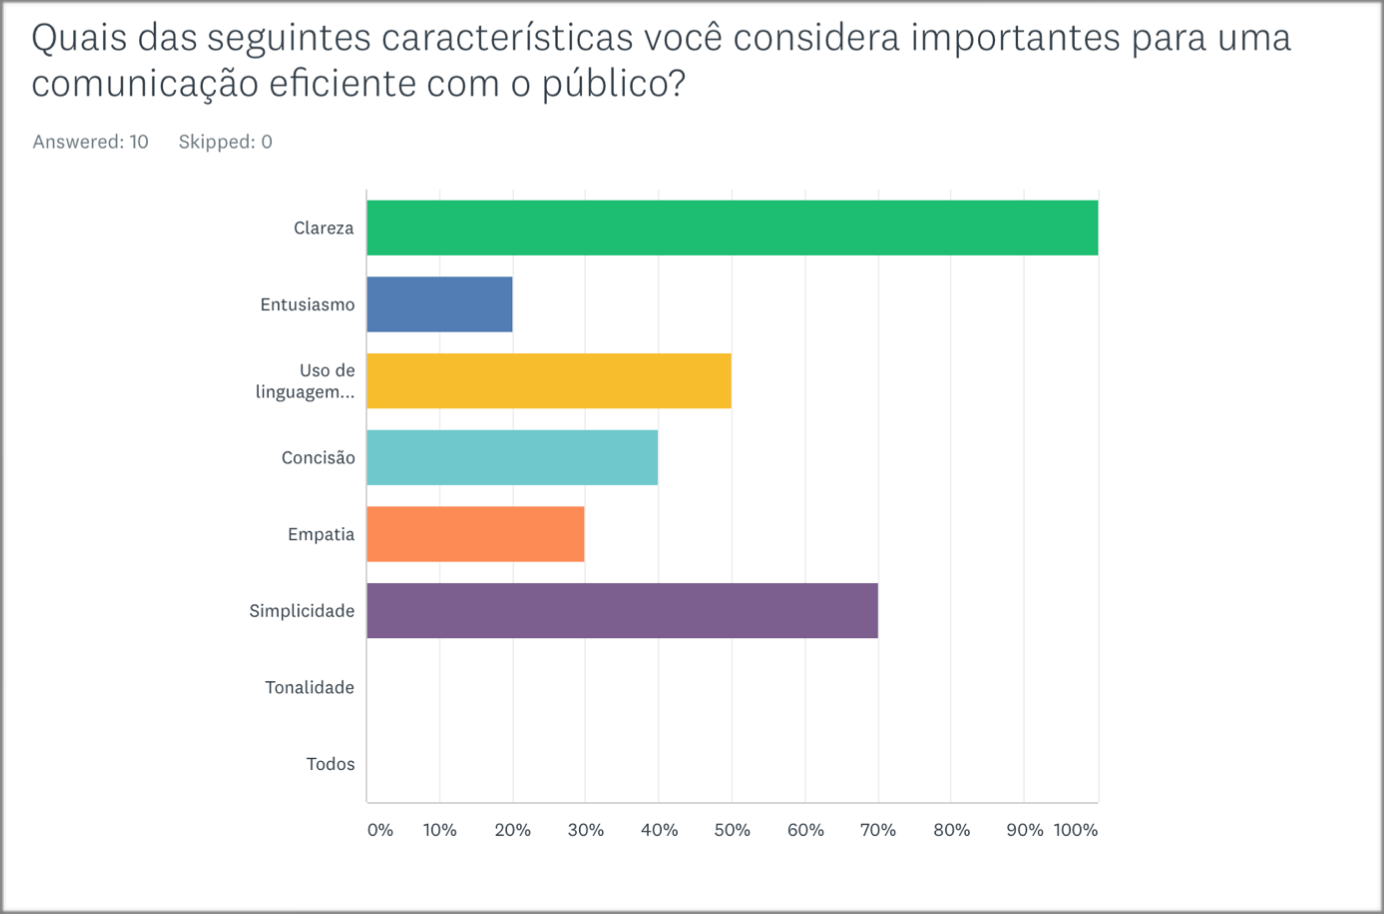 Most efficient communication characteristics (Portuguese Survey).